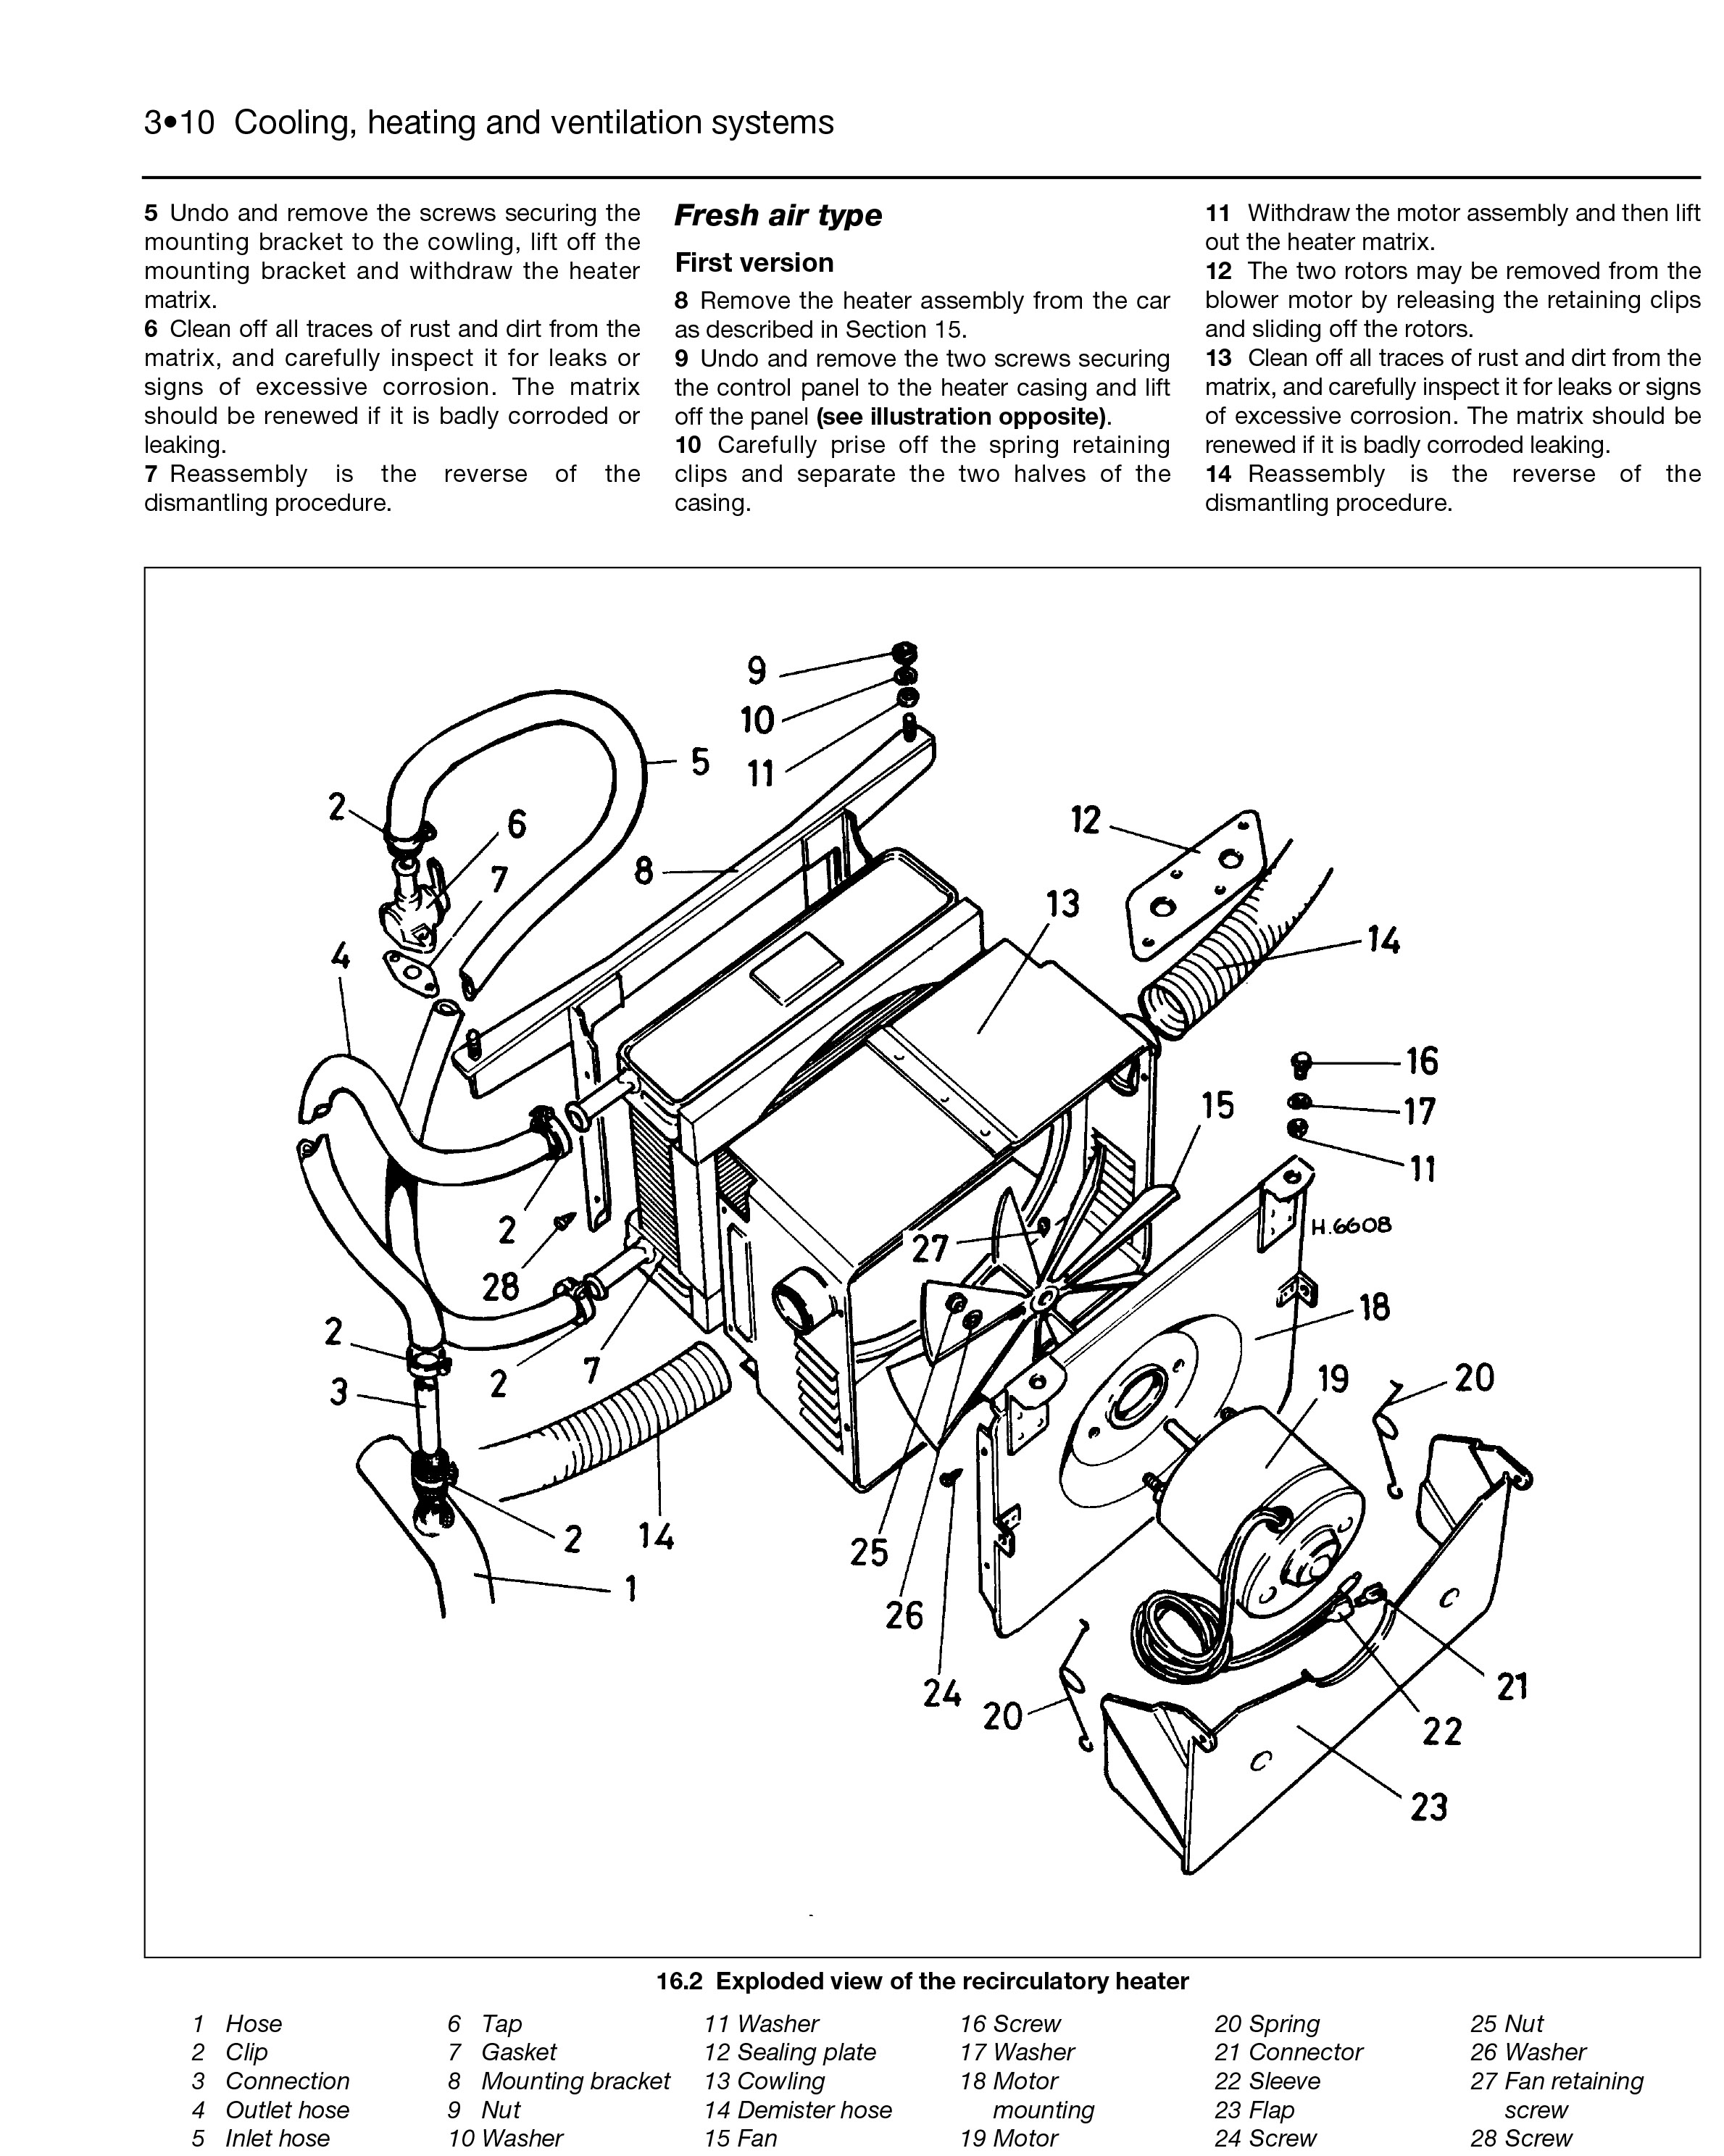 Mini haynes repair manual publishing